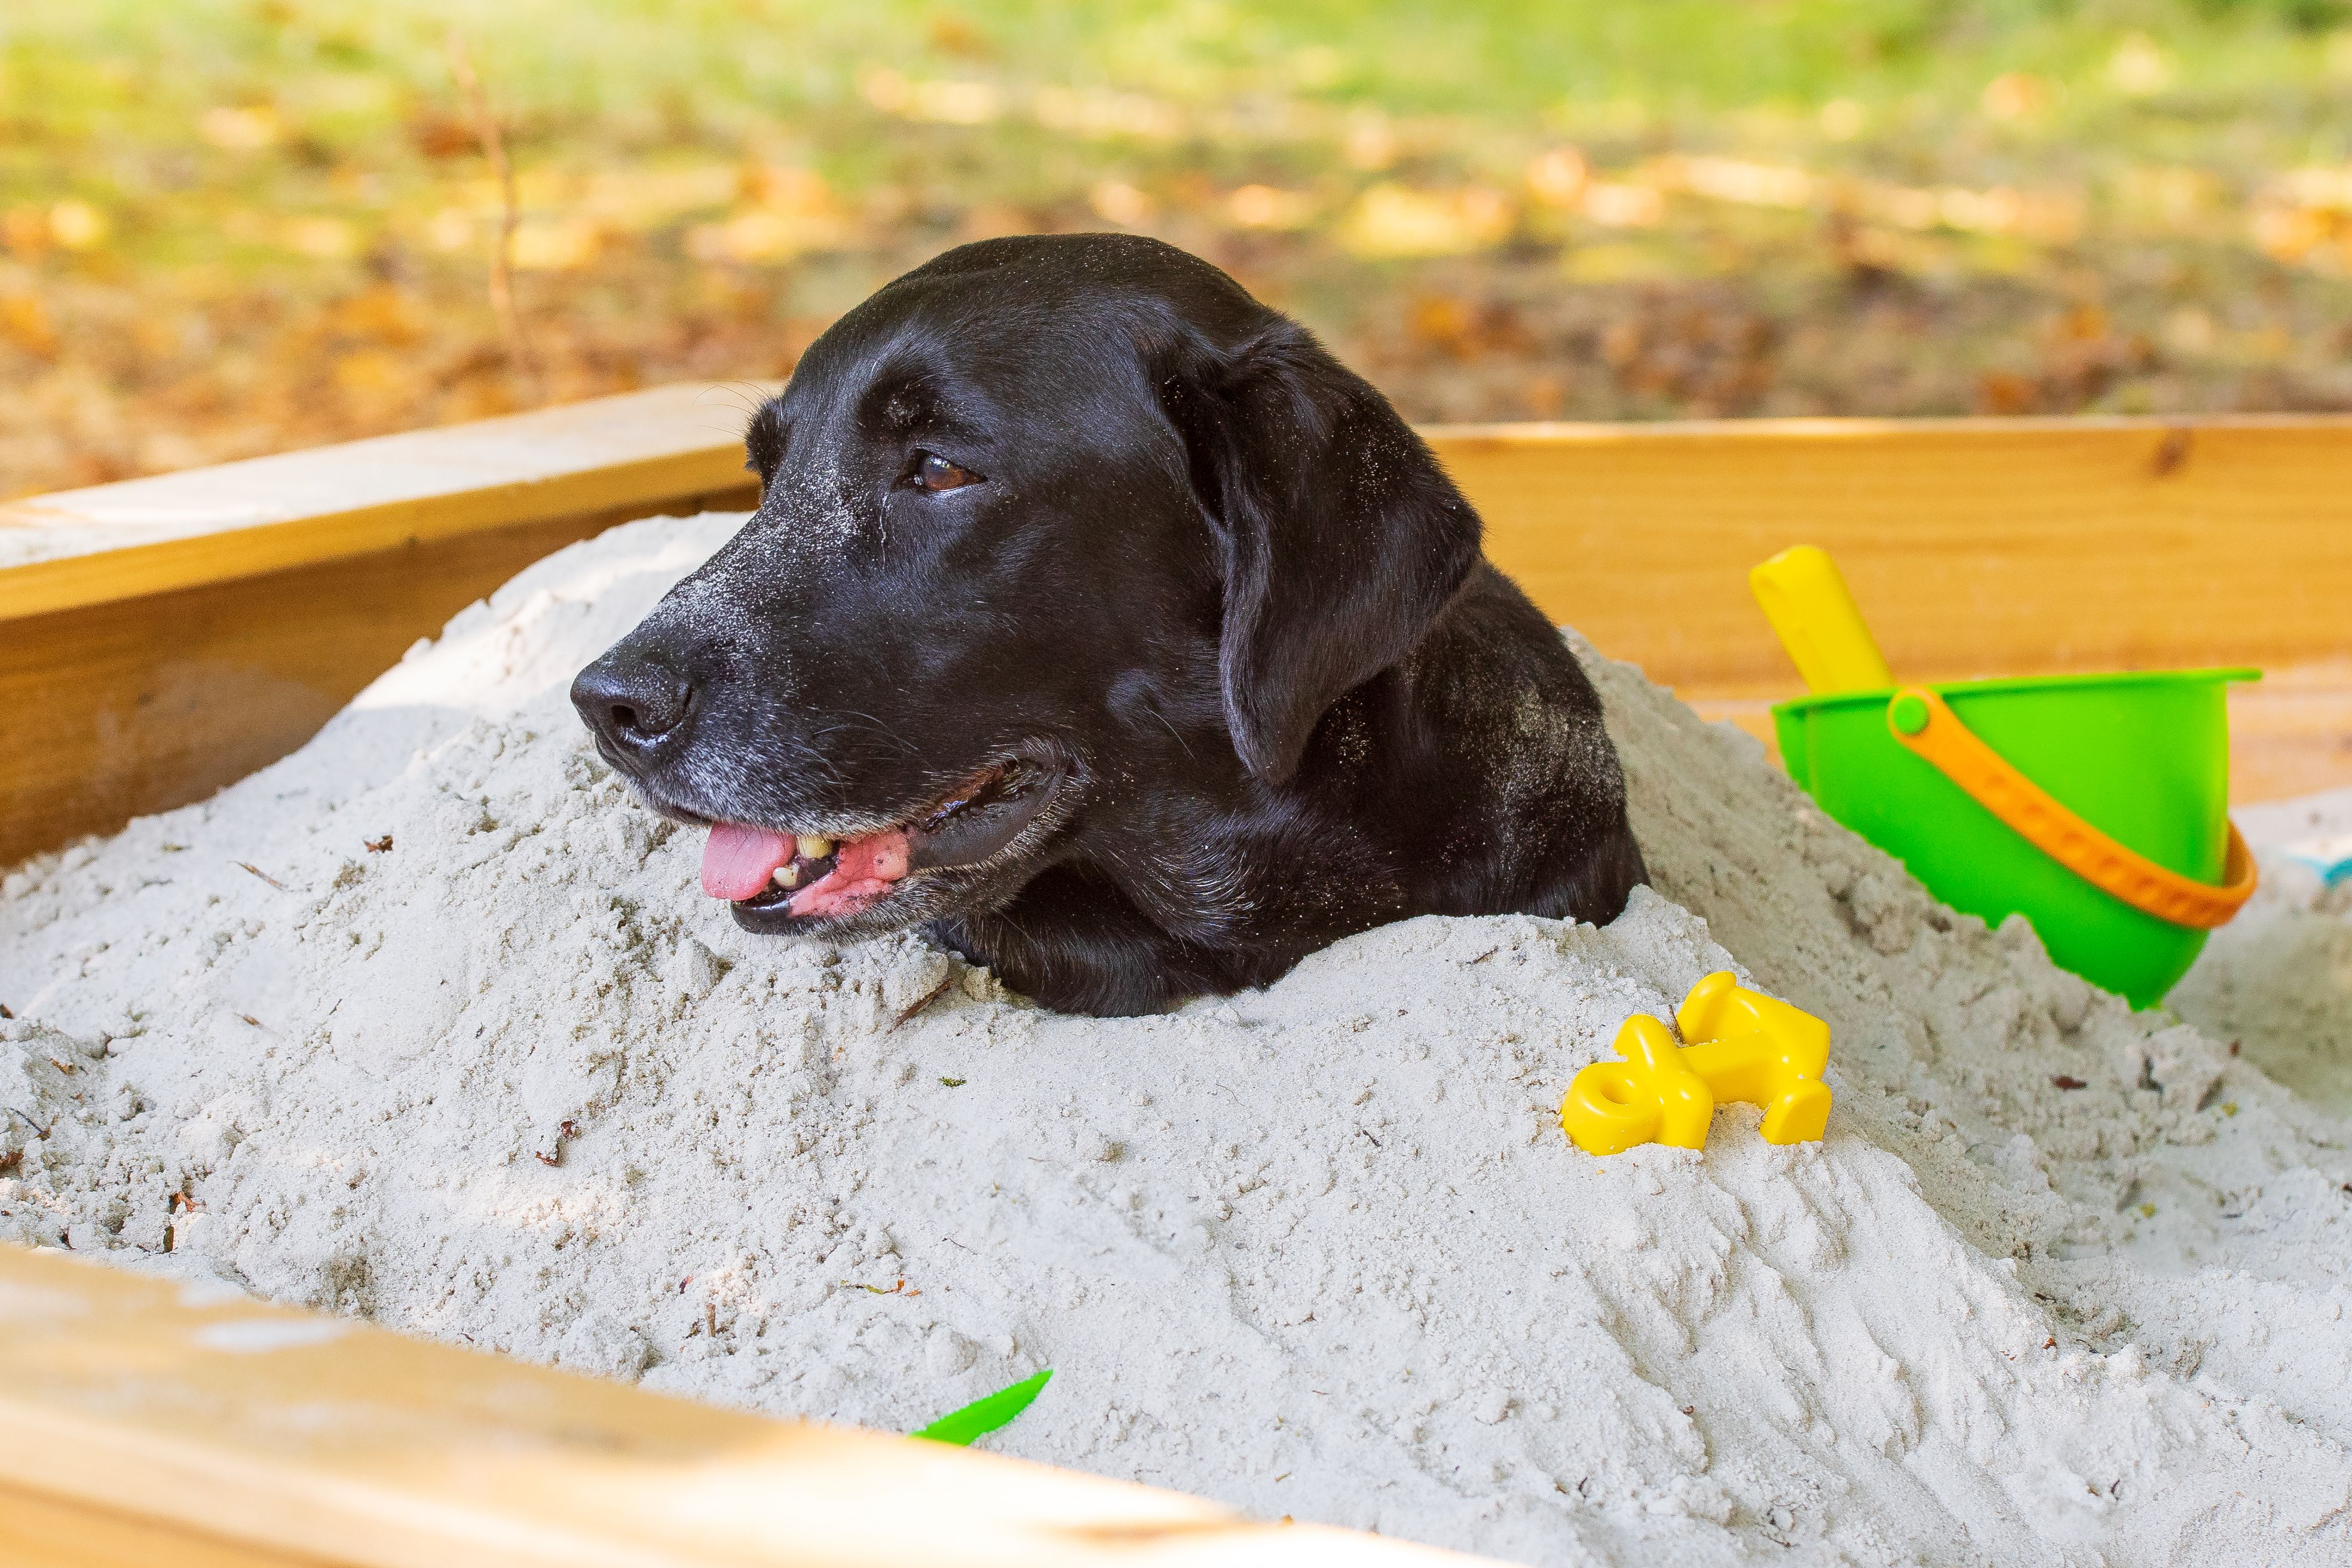 A Dog Plays In Sand